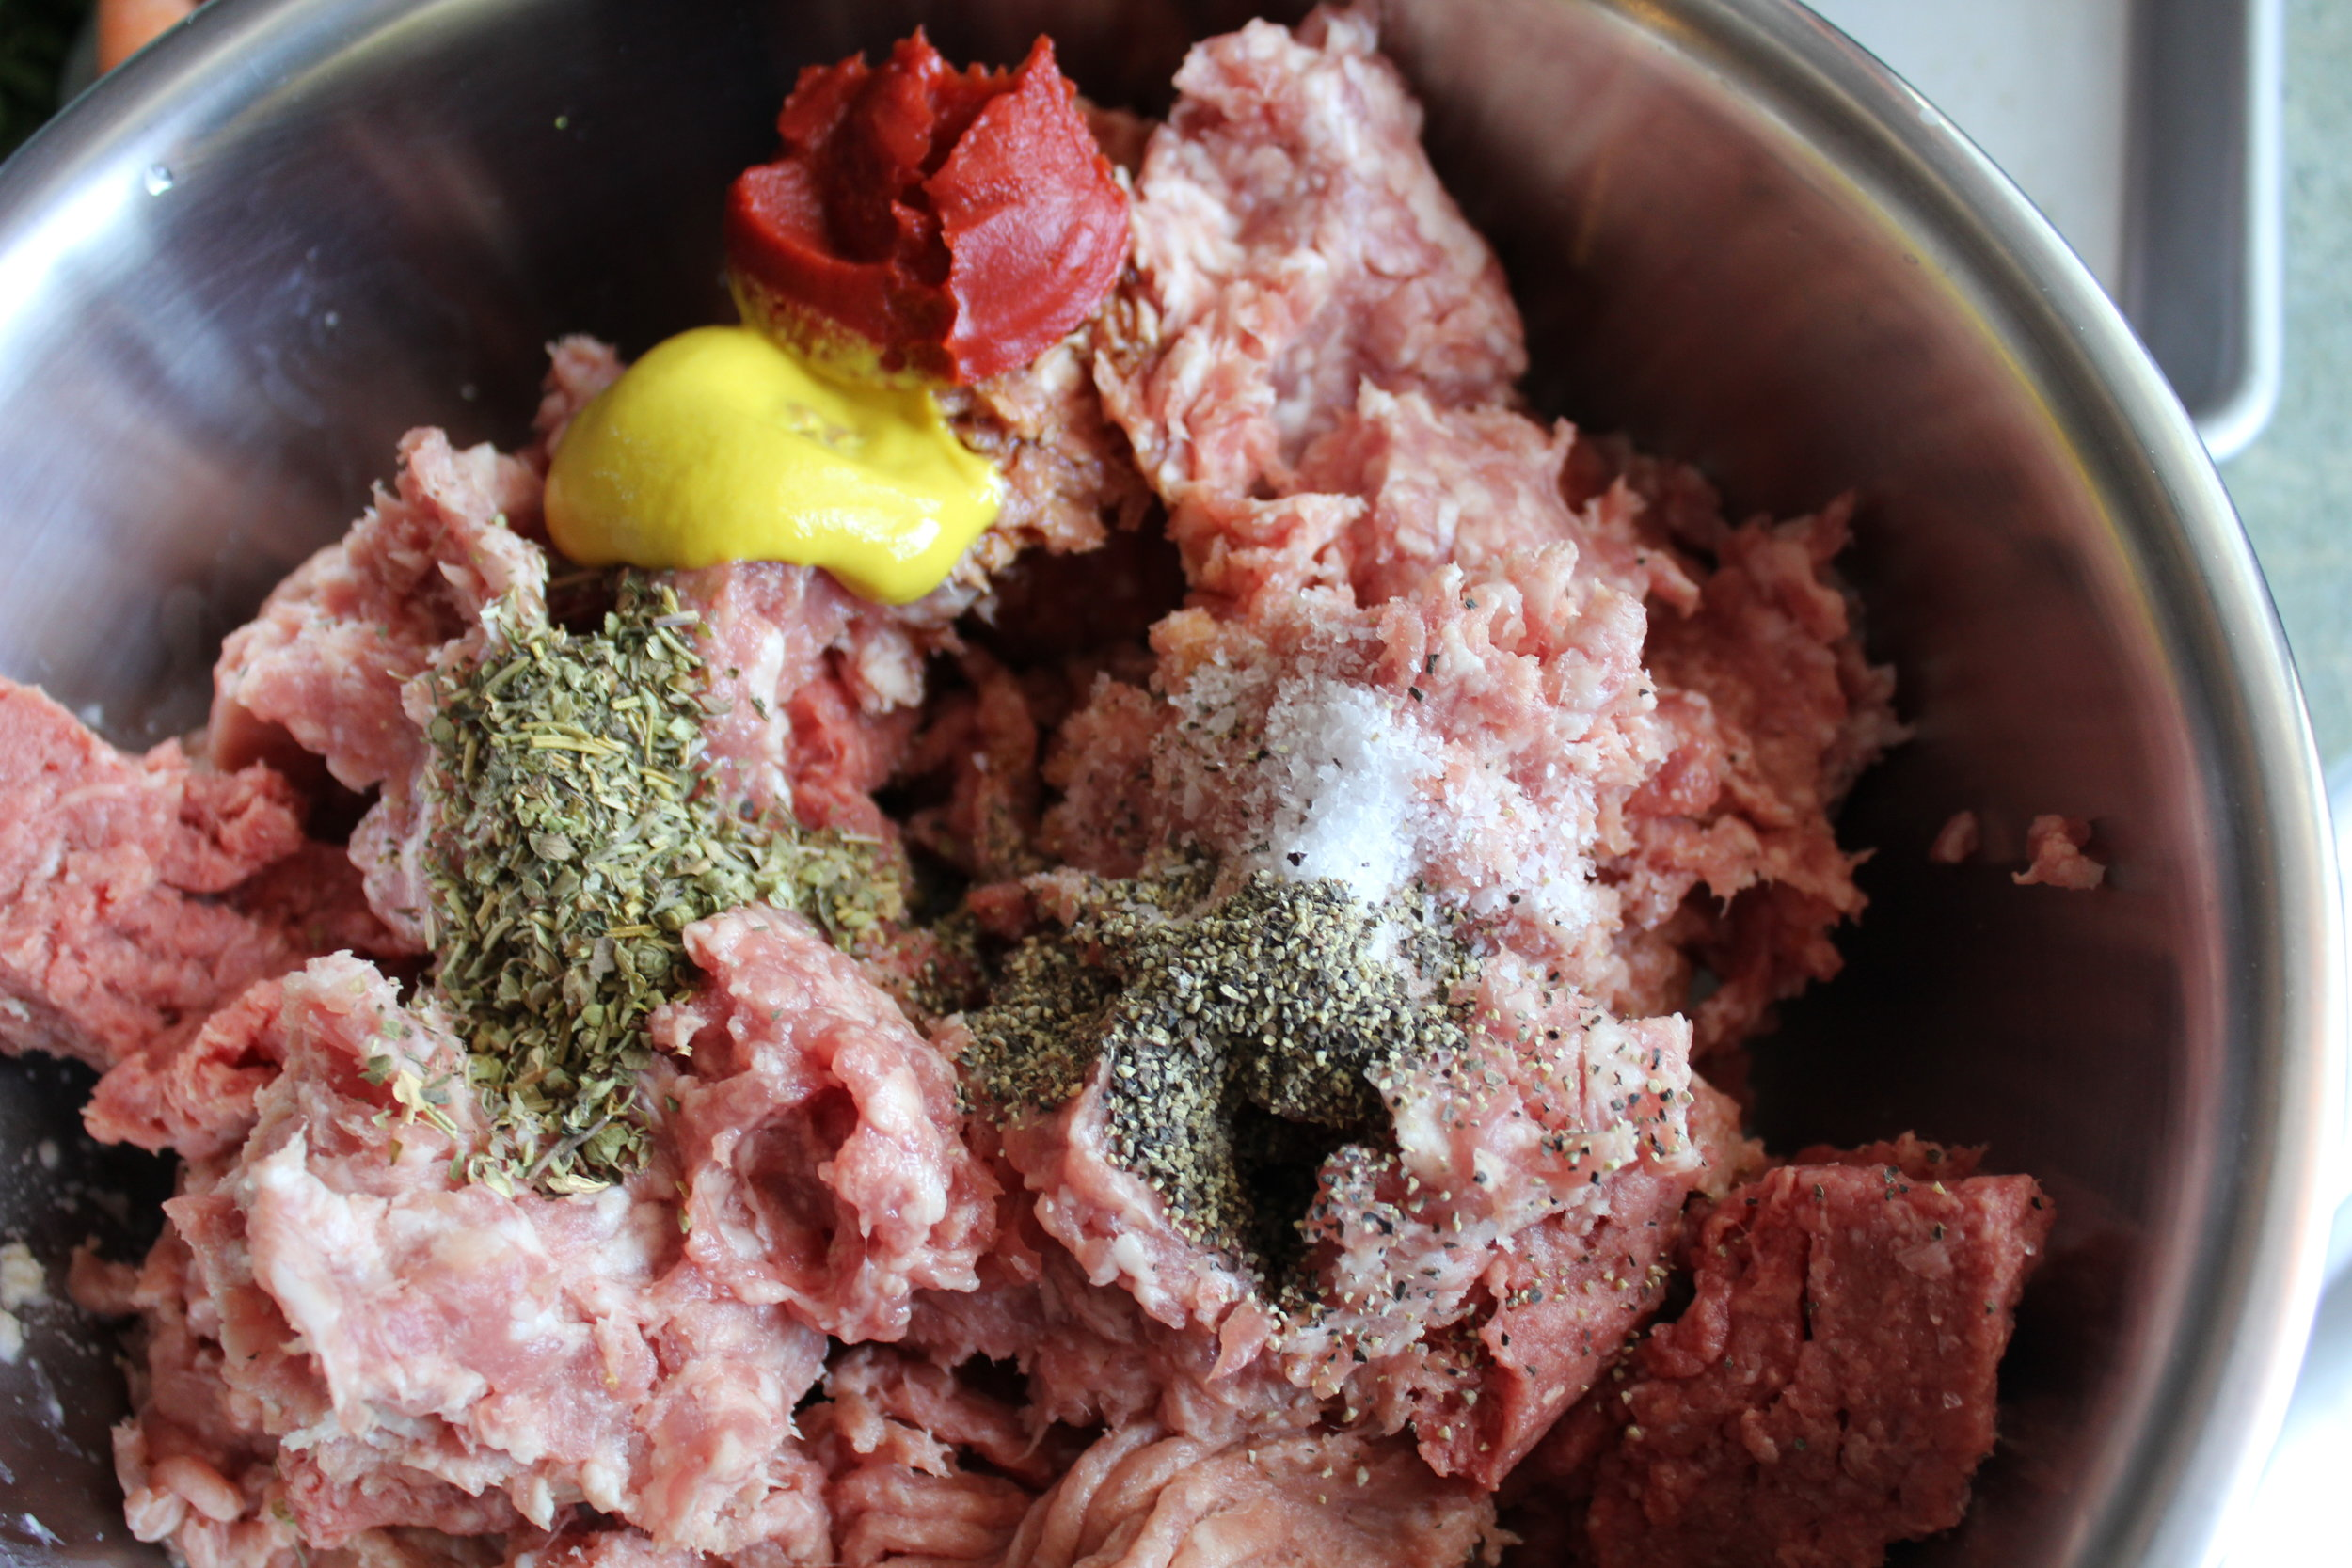 3.  Add the beef, turkey and pork. Sprinkle with the Italian seasoning, Worcestershire sauce, salt, pepper, 1 TB of the tomato paste and mustard and mix until blended. Using your (clean) hands here is perfectly fine.